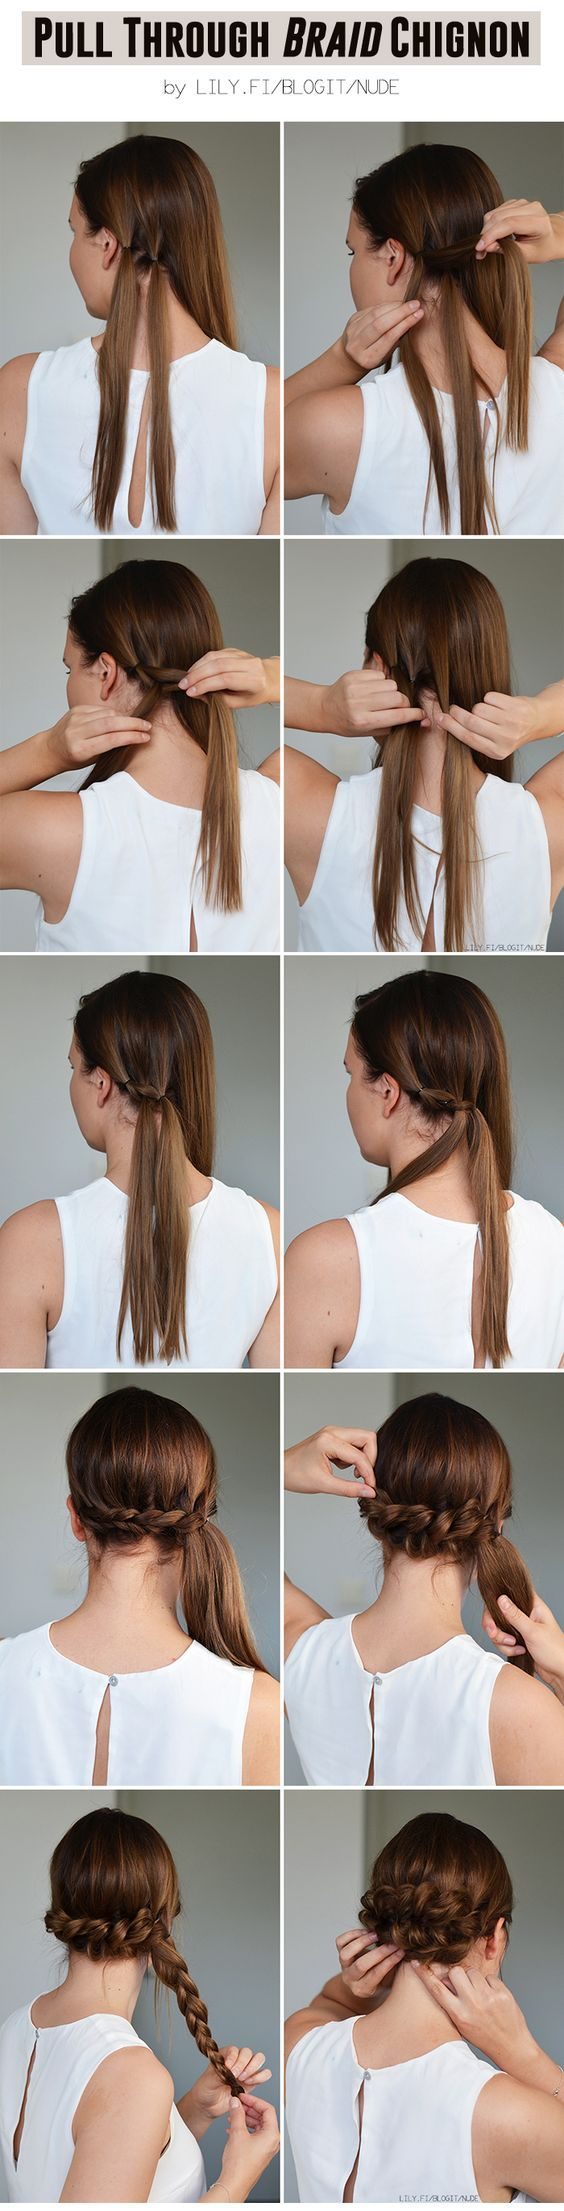 Pull through braid chignon for a wedding or on a date uc daughter